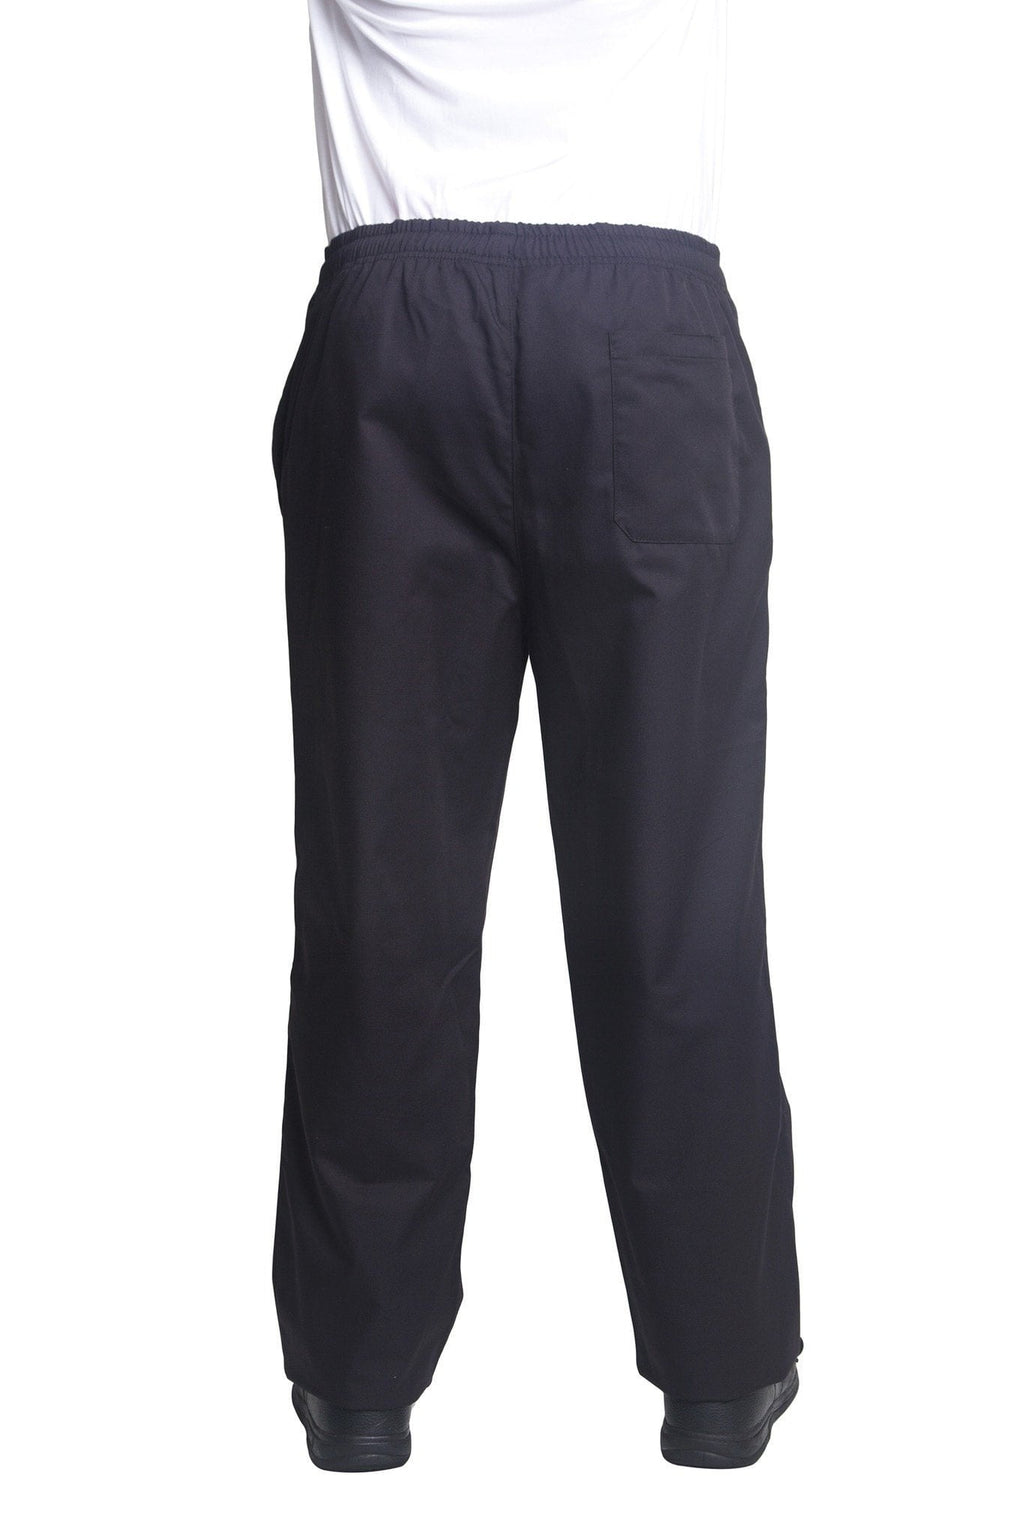 Bragard Pantalon Nick Black Chef Pants Back